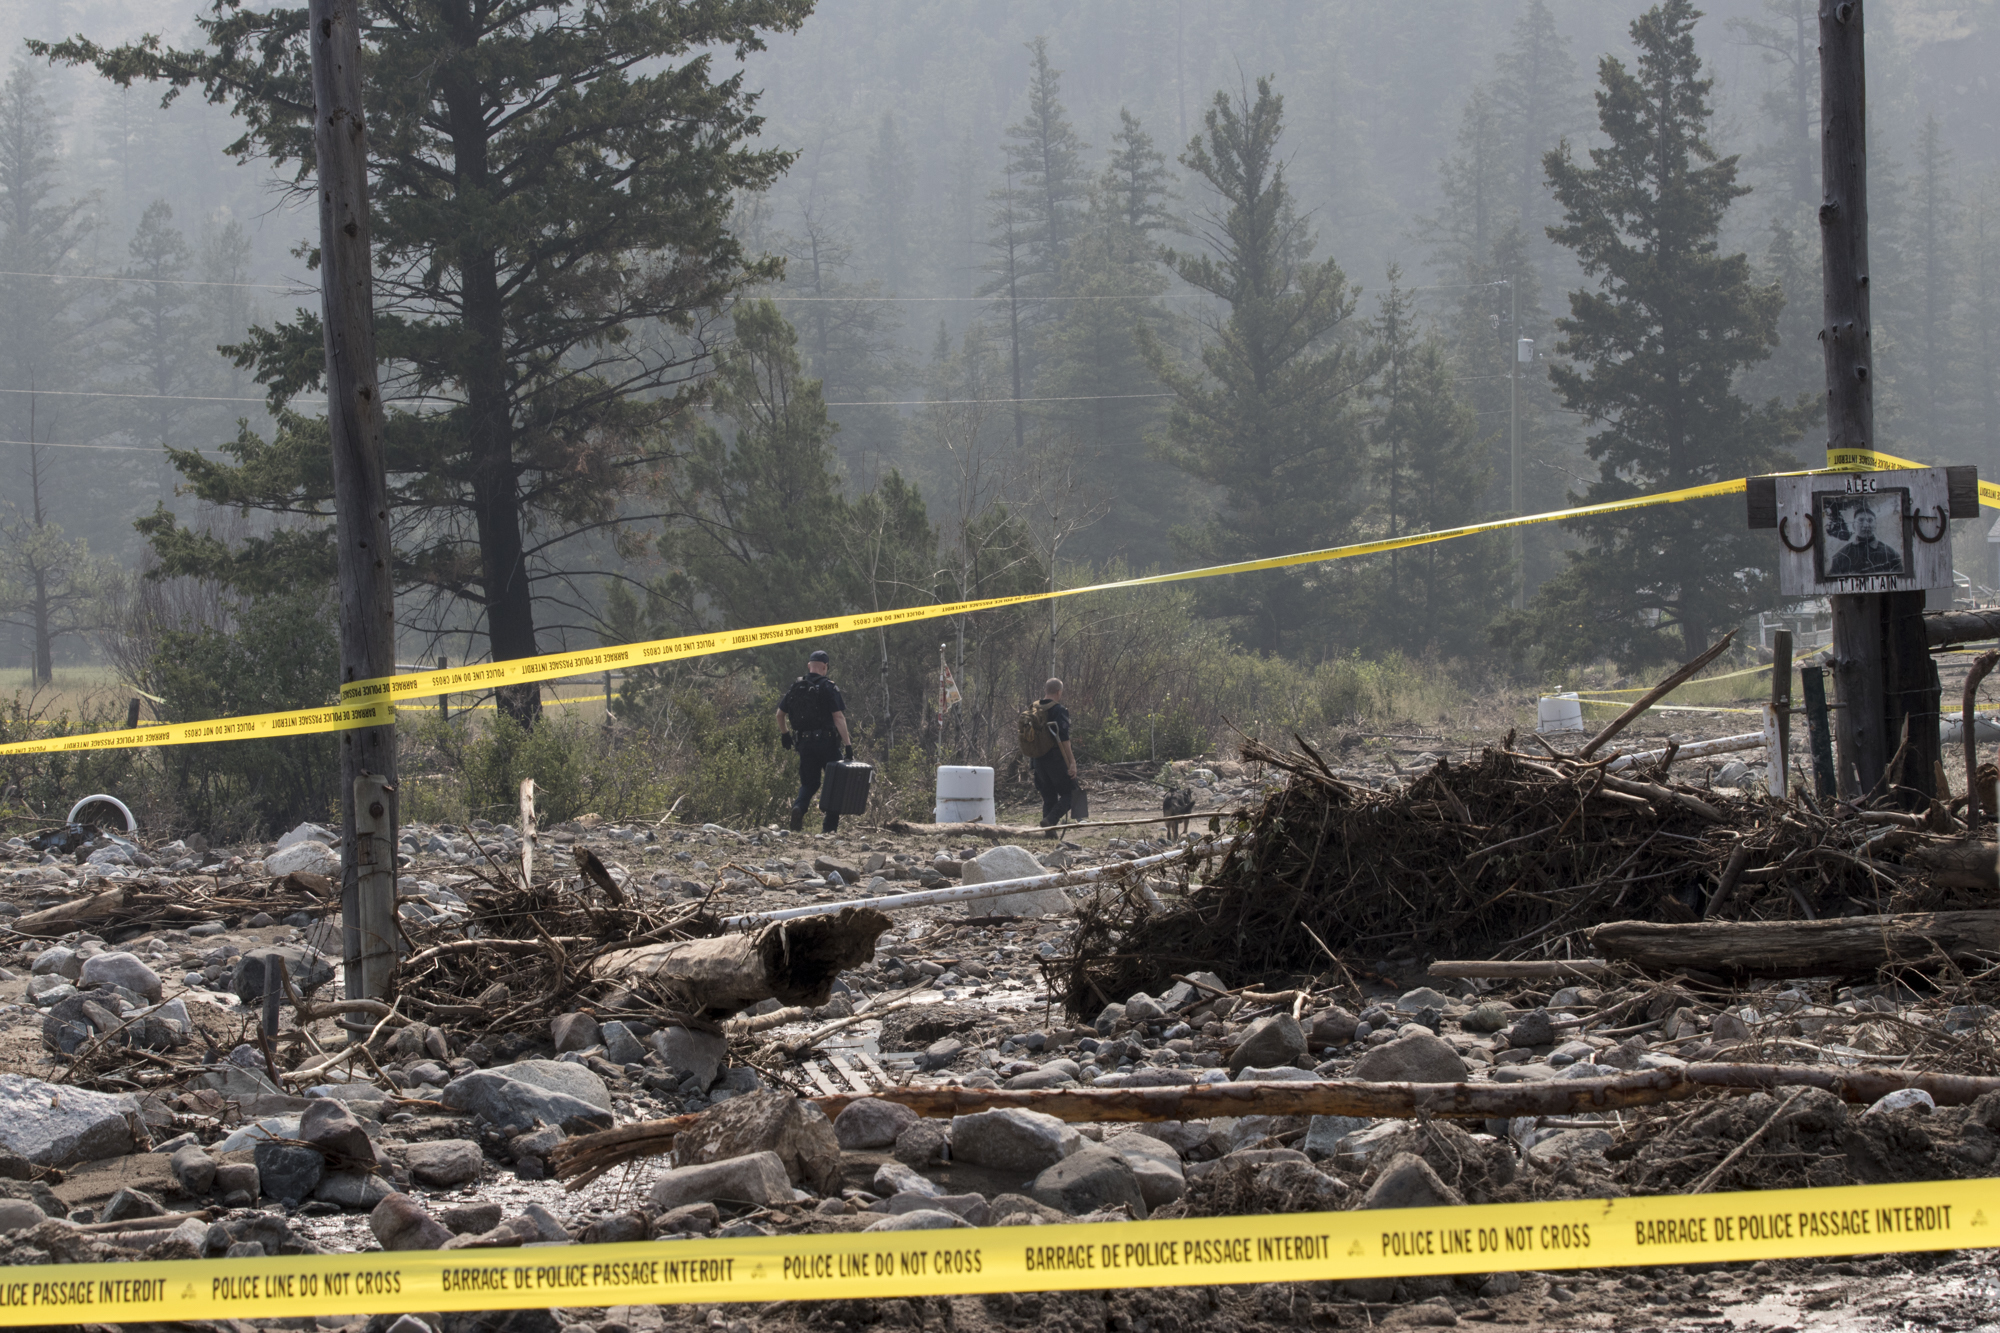 Police dogs with the help of drones set out to find a woman who was swept away by the mudslide along Highway 99 earlier in August. (Tina Lovgreen/CBC)